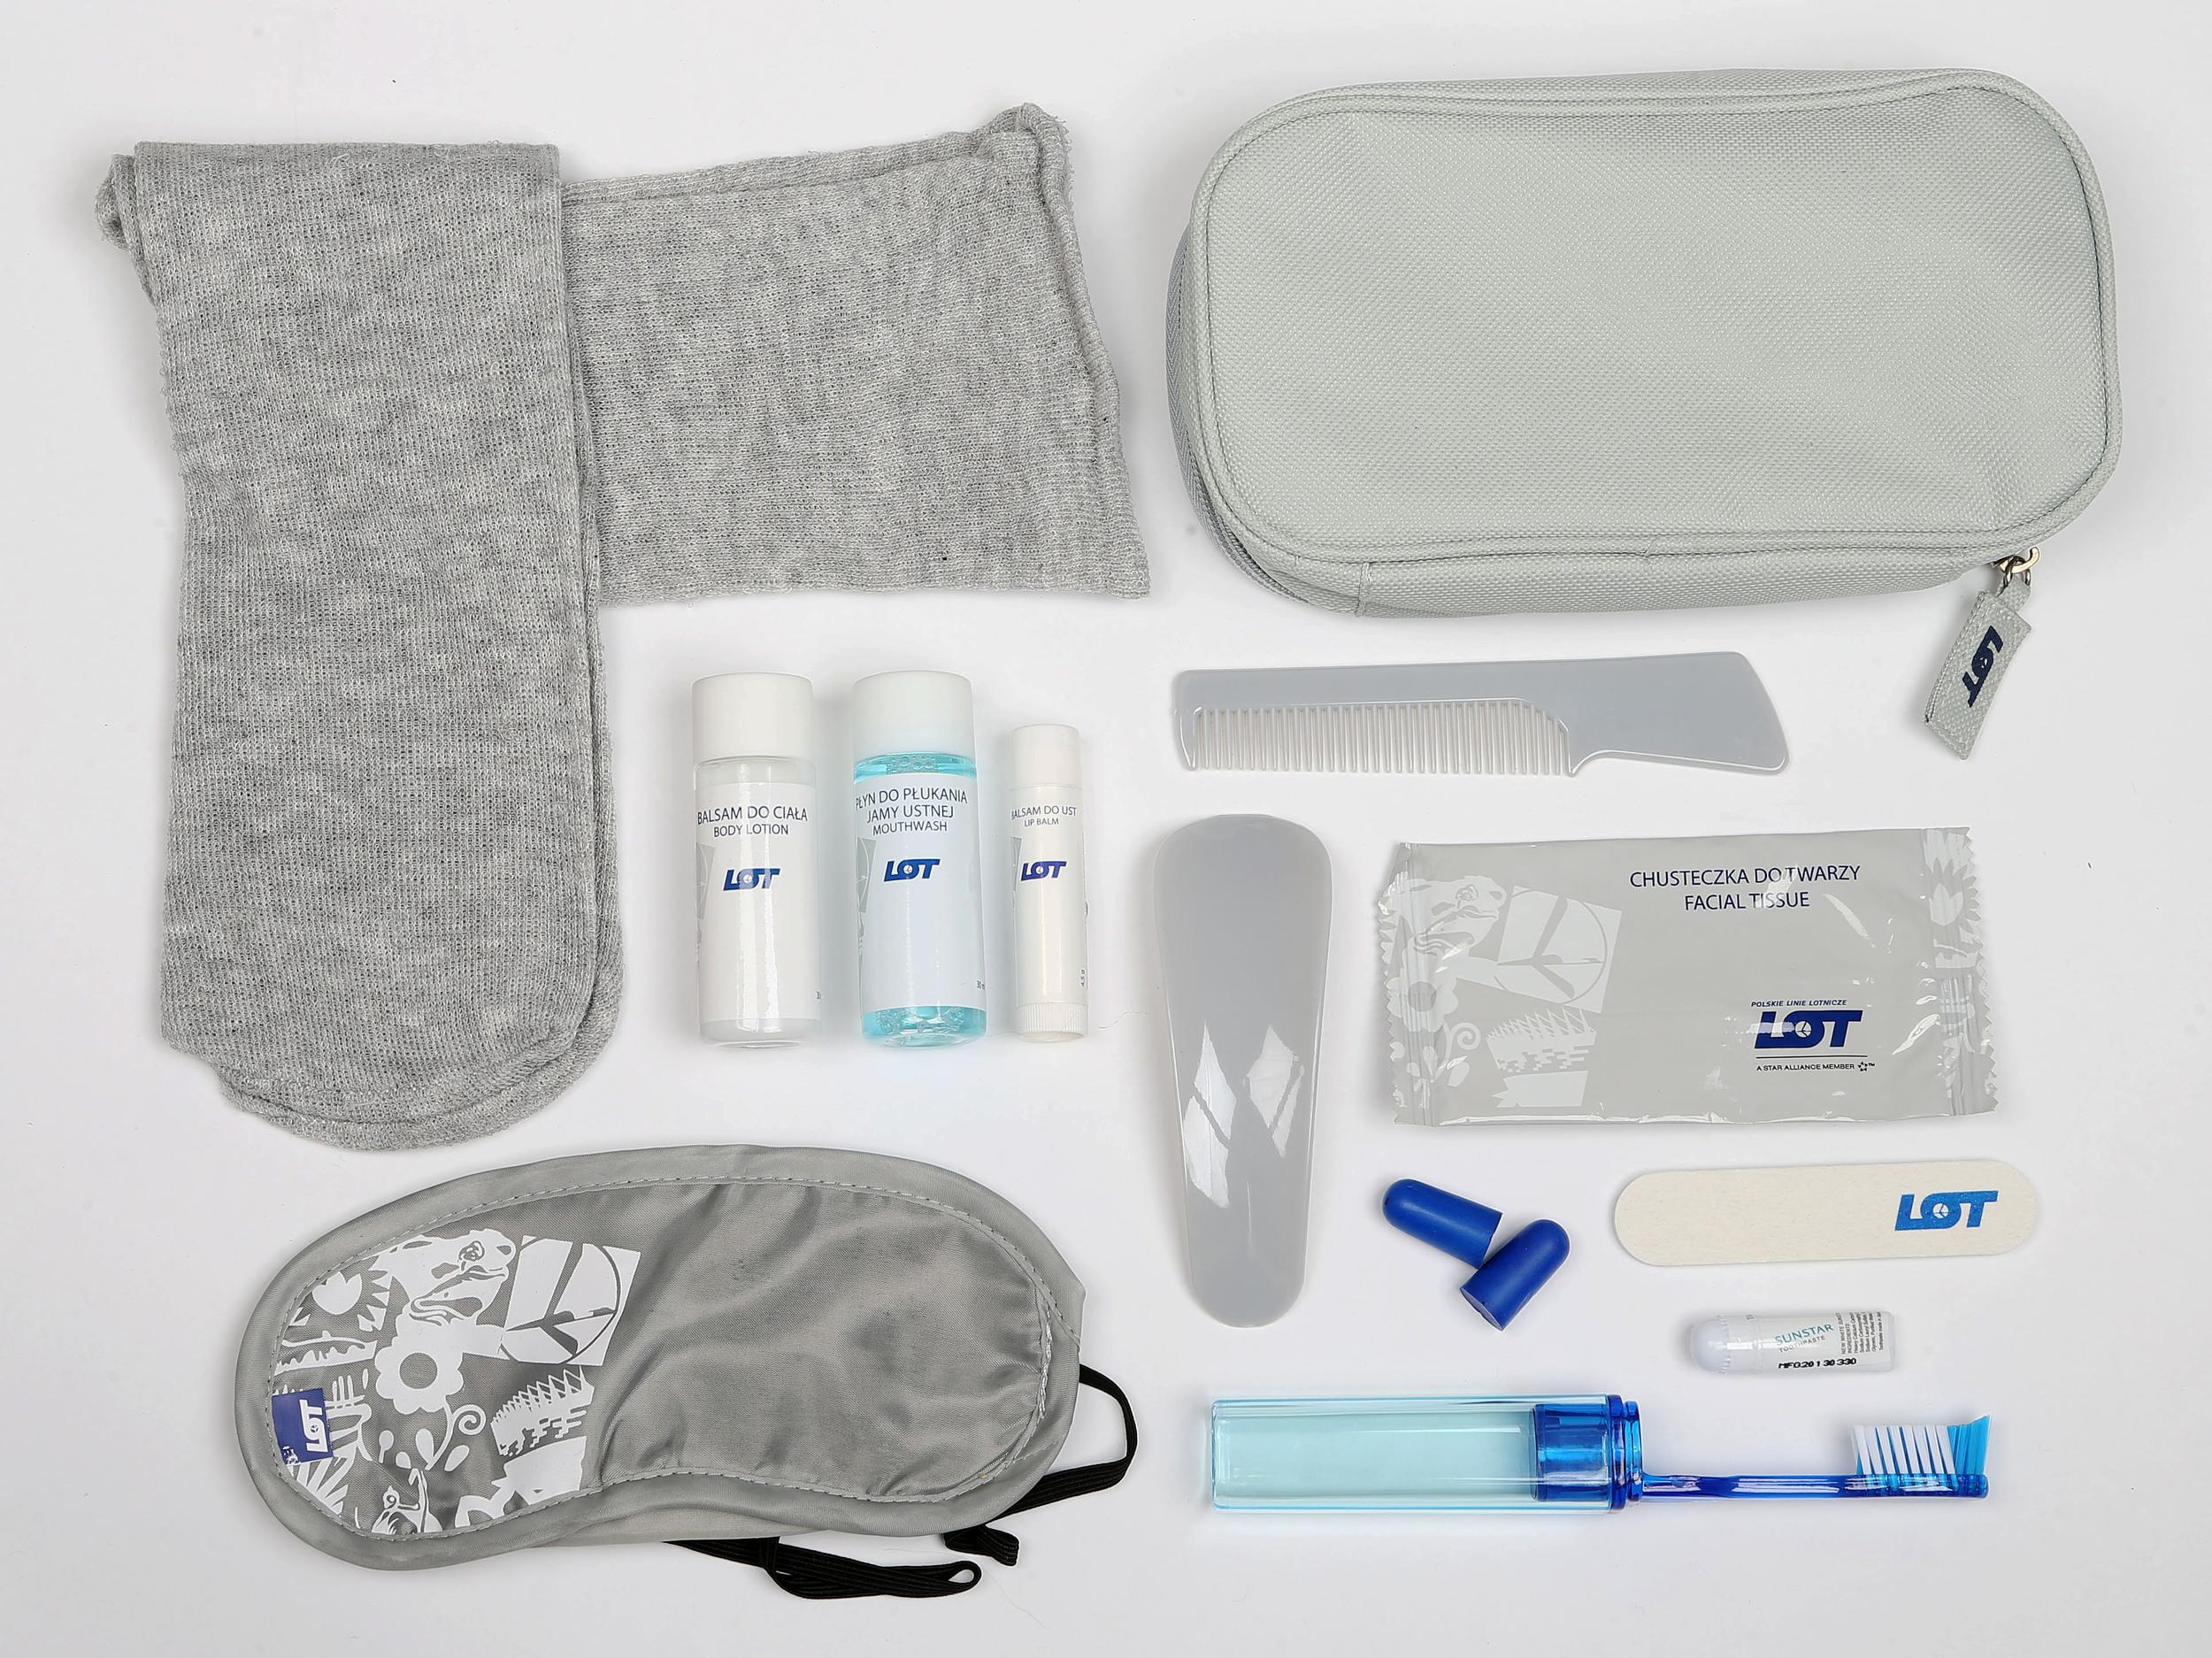 <p><strong>What do you get?</strong> The Business Class kit contains a range of cosmetics: Socks, eye mask, shoe horn, ear plugs, mouthwash, body lotion, lip balm, wet wipe, nail file, comb<br /> <strong>Best bit of the kit?</strong> The attention to detail is striking: all of the products are decorated not only with LOT's logo but also a quirky little white design on a light grey background; there is a nice feel to the soft grey socks too.</p>